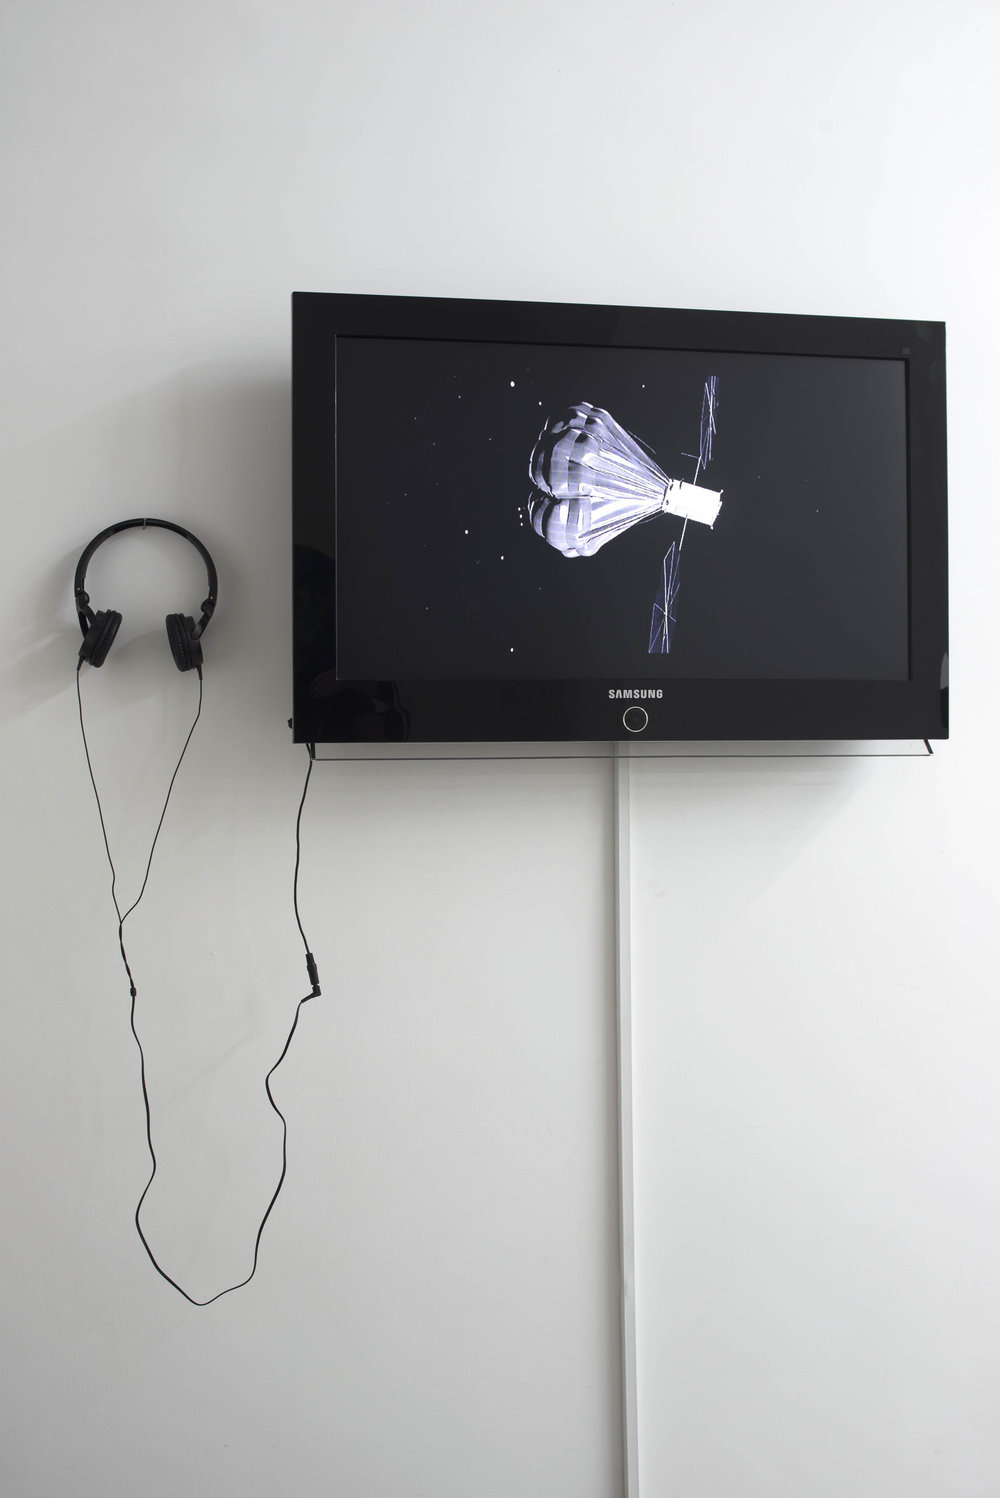 Andrea Zucchini, If the eye were not sun-like, it could not see the sun , 2014. Photo by Giorgio Benni. Image courtesy the artist, curators and The Gallery Apart, Rome.